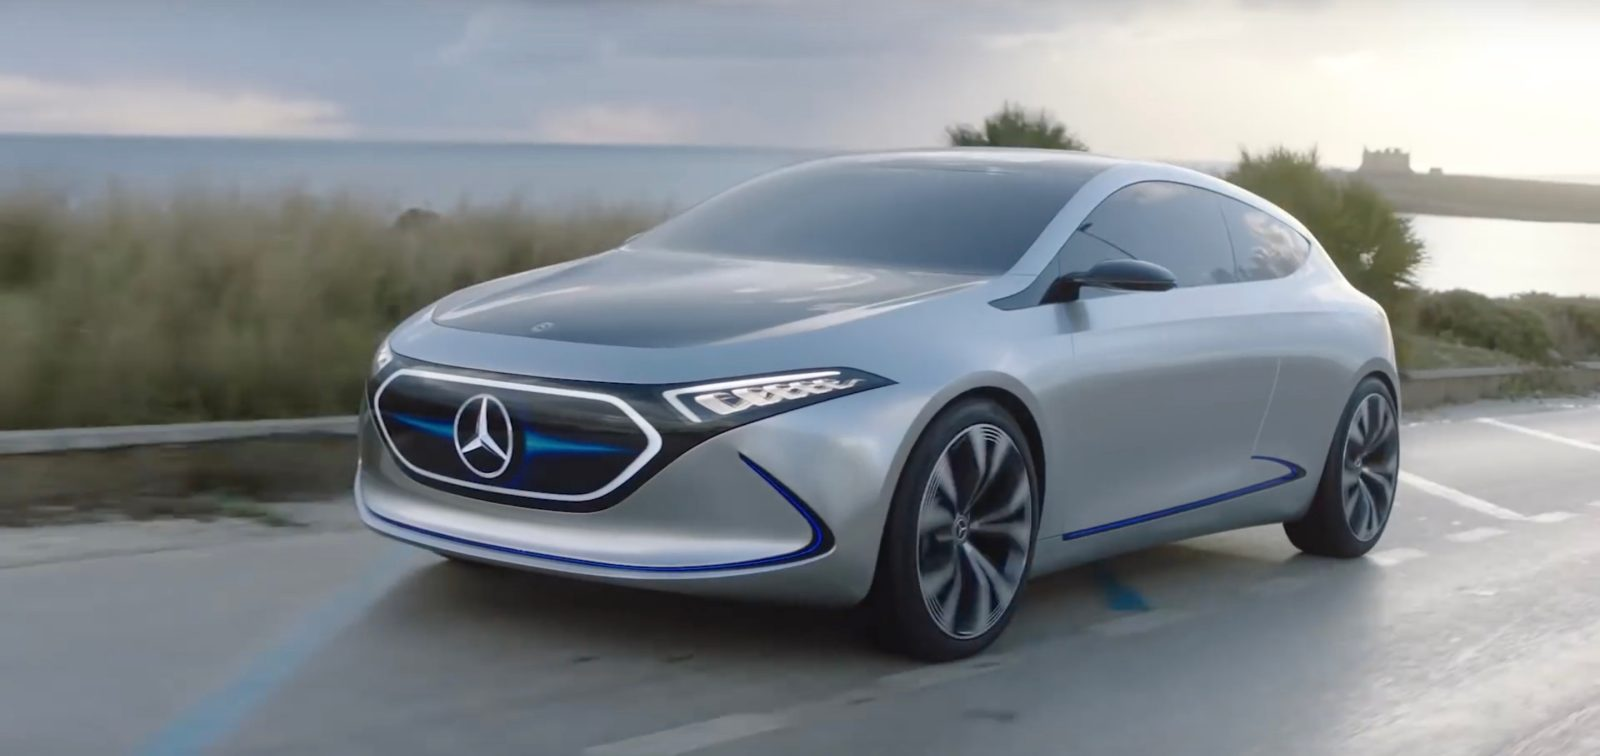 Mercedes Benz Showcases Latest All Electric Compact Car Working Prototype